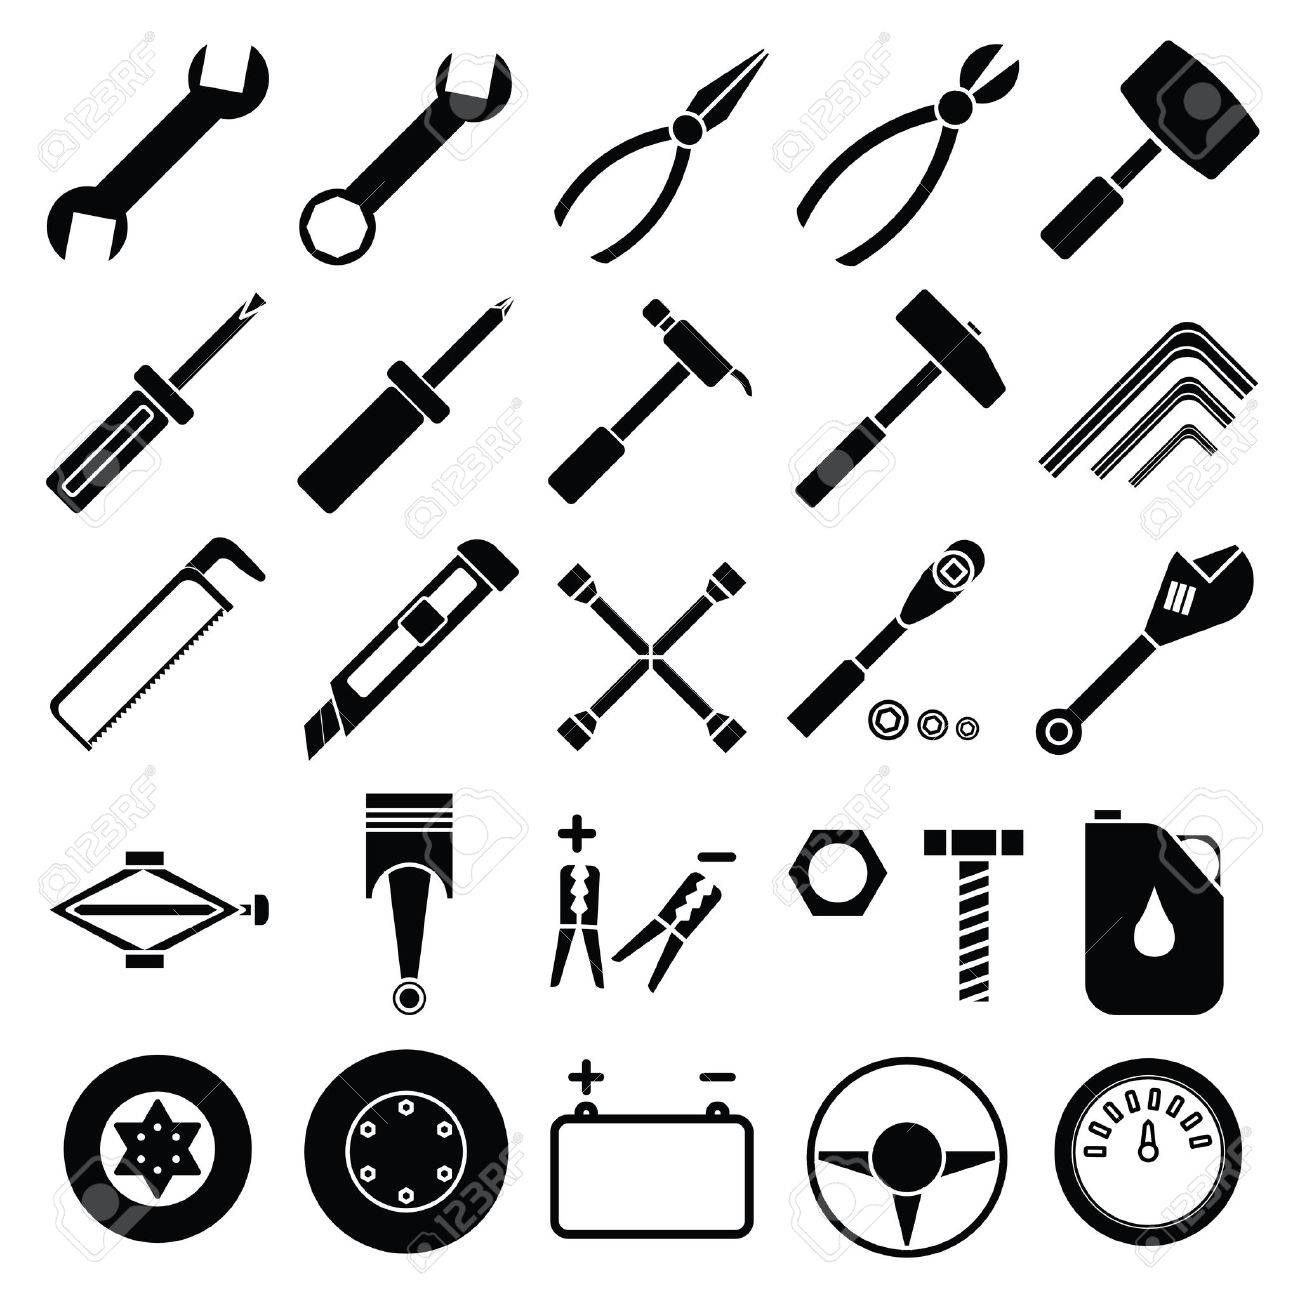 Mechanic tools clipart 2 » Clipart Station.